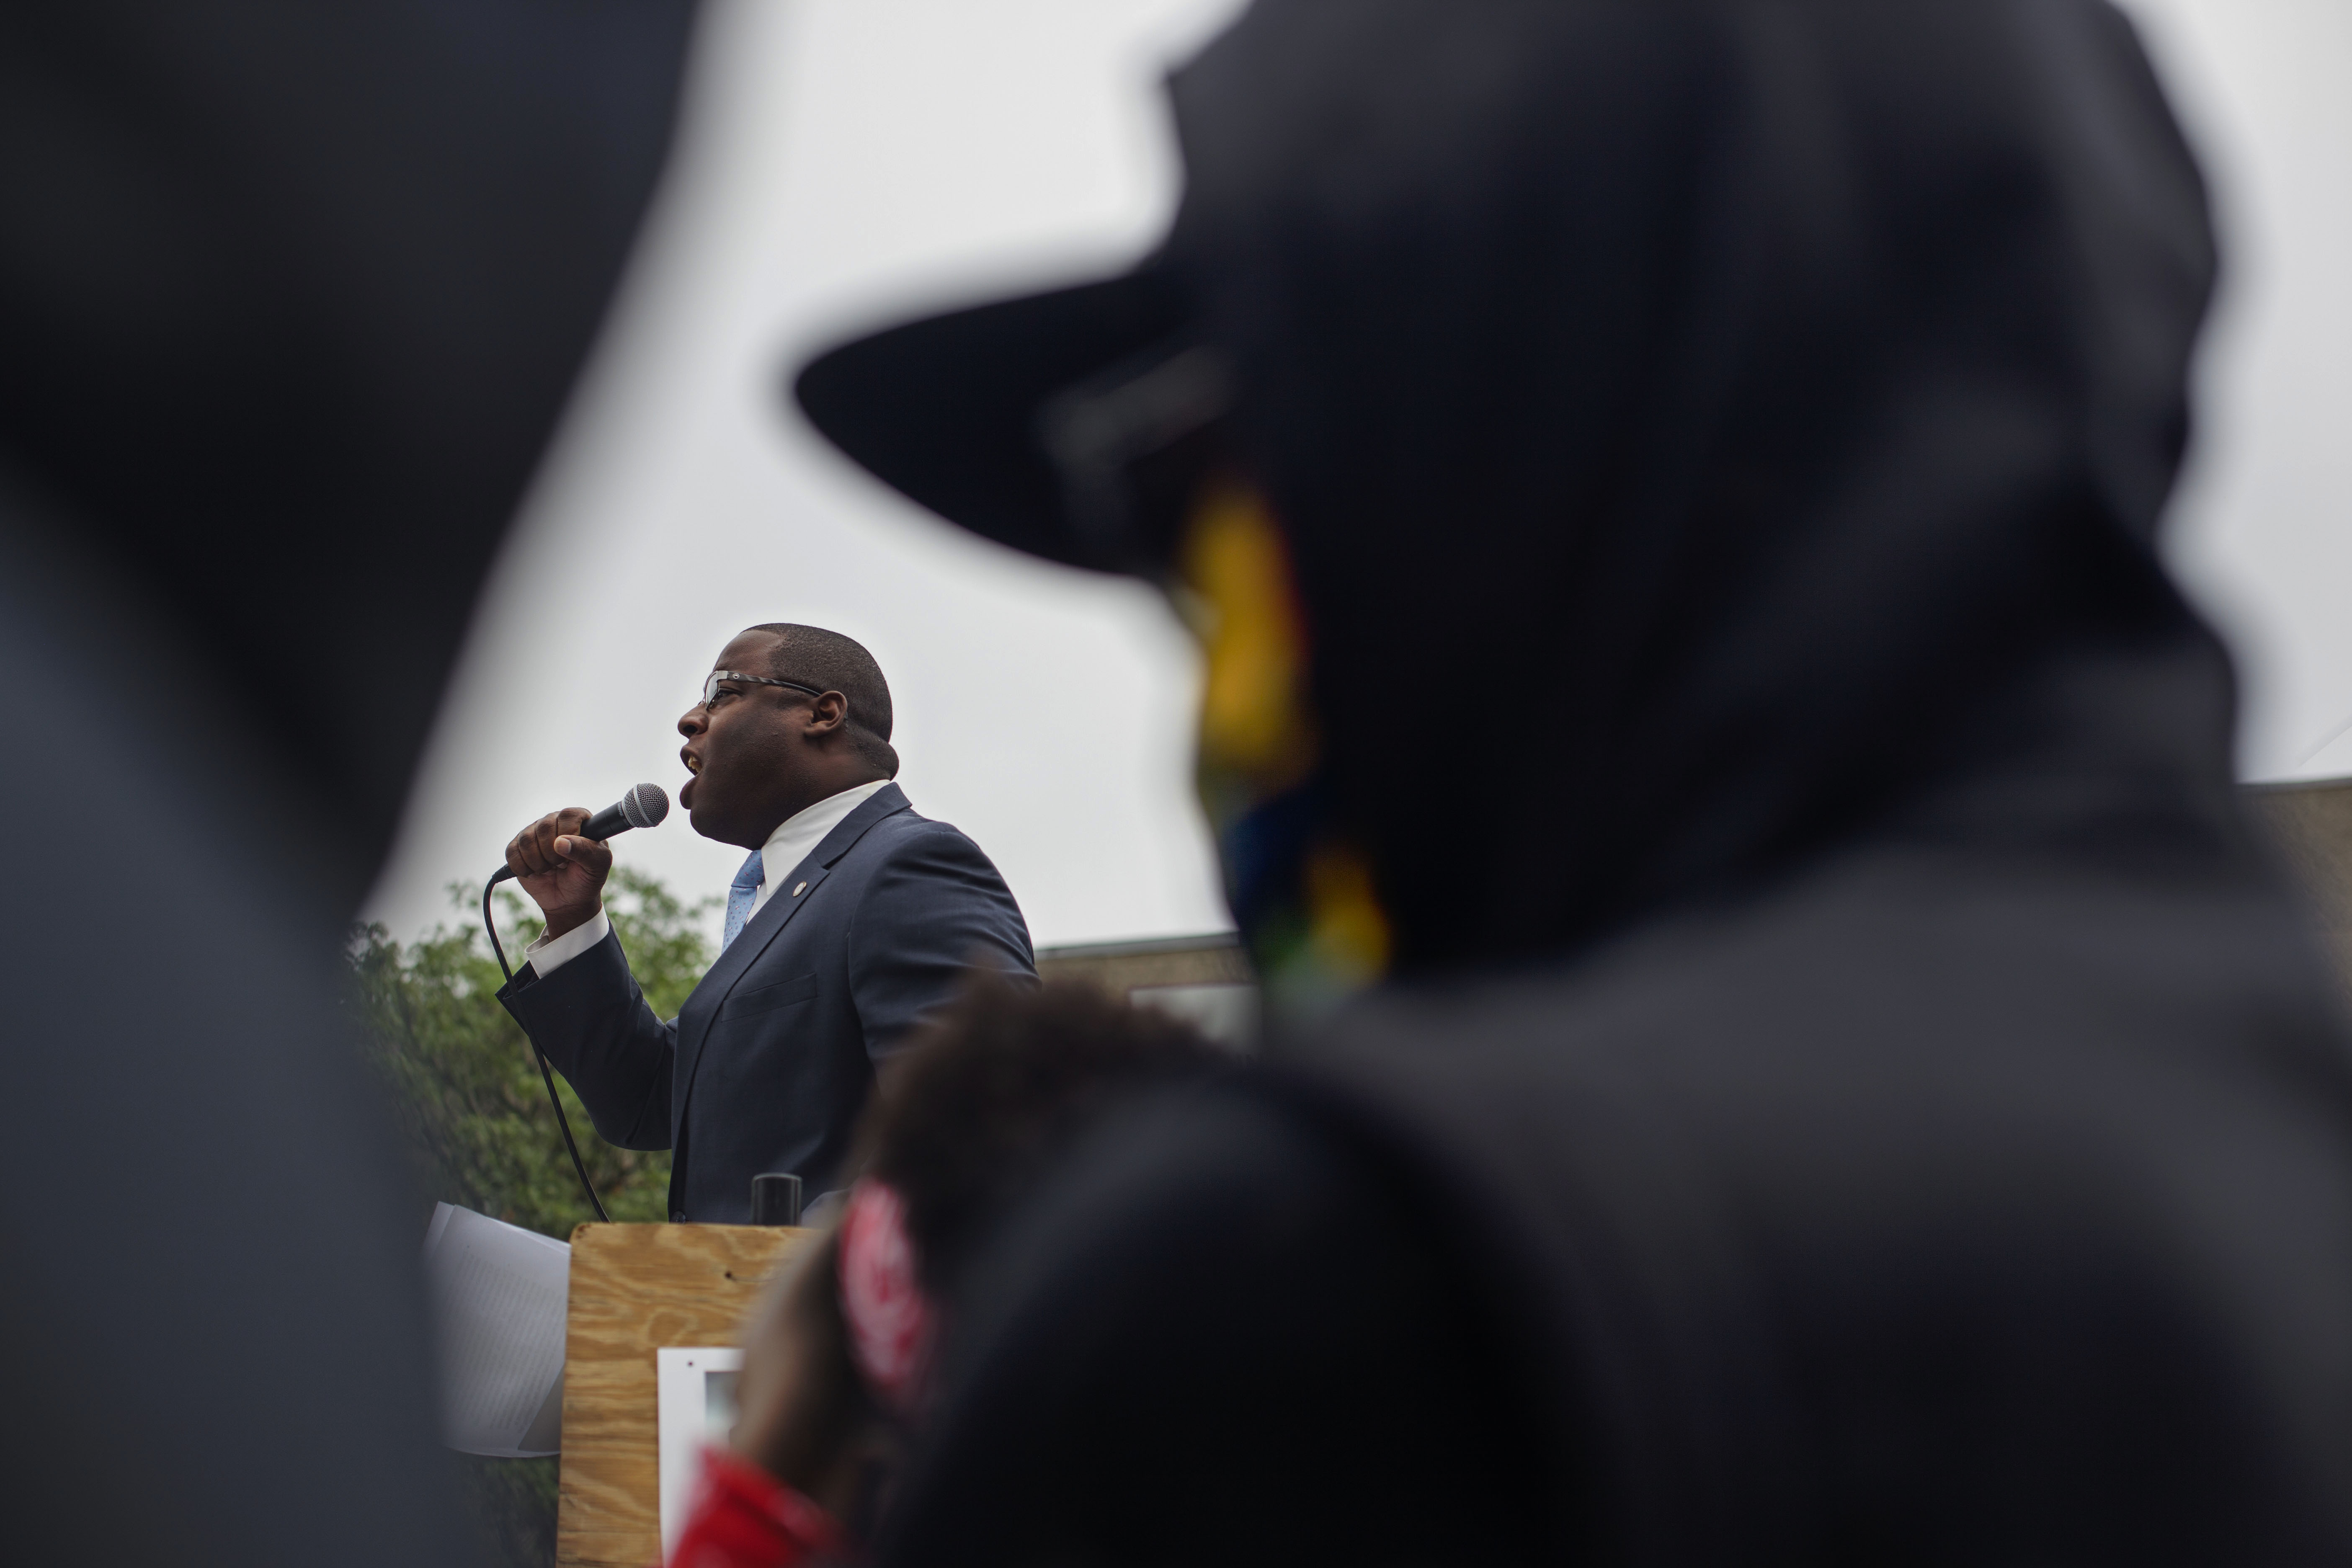 Boston City Councilman and mayoral candidate Tito Jackson spoke to the crowd of counter protesters assembling at Reggie Lewis Track & Field Center. Jackson spoke against white nationalism and the Free Speech Rally happening at the Boston Common. (Shay Horse/GroundTruth)